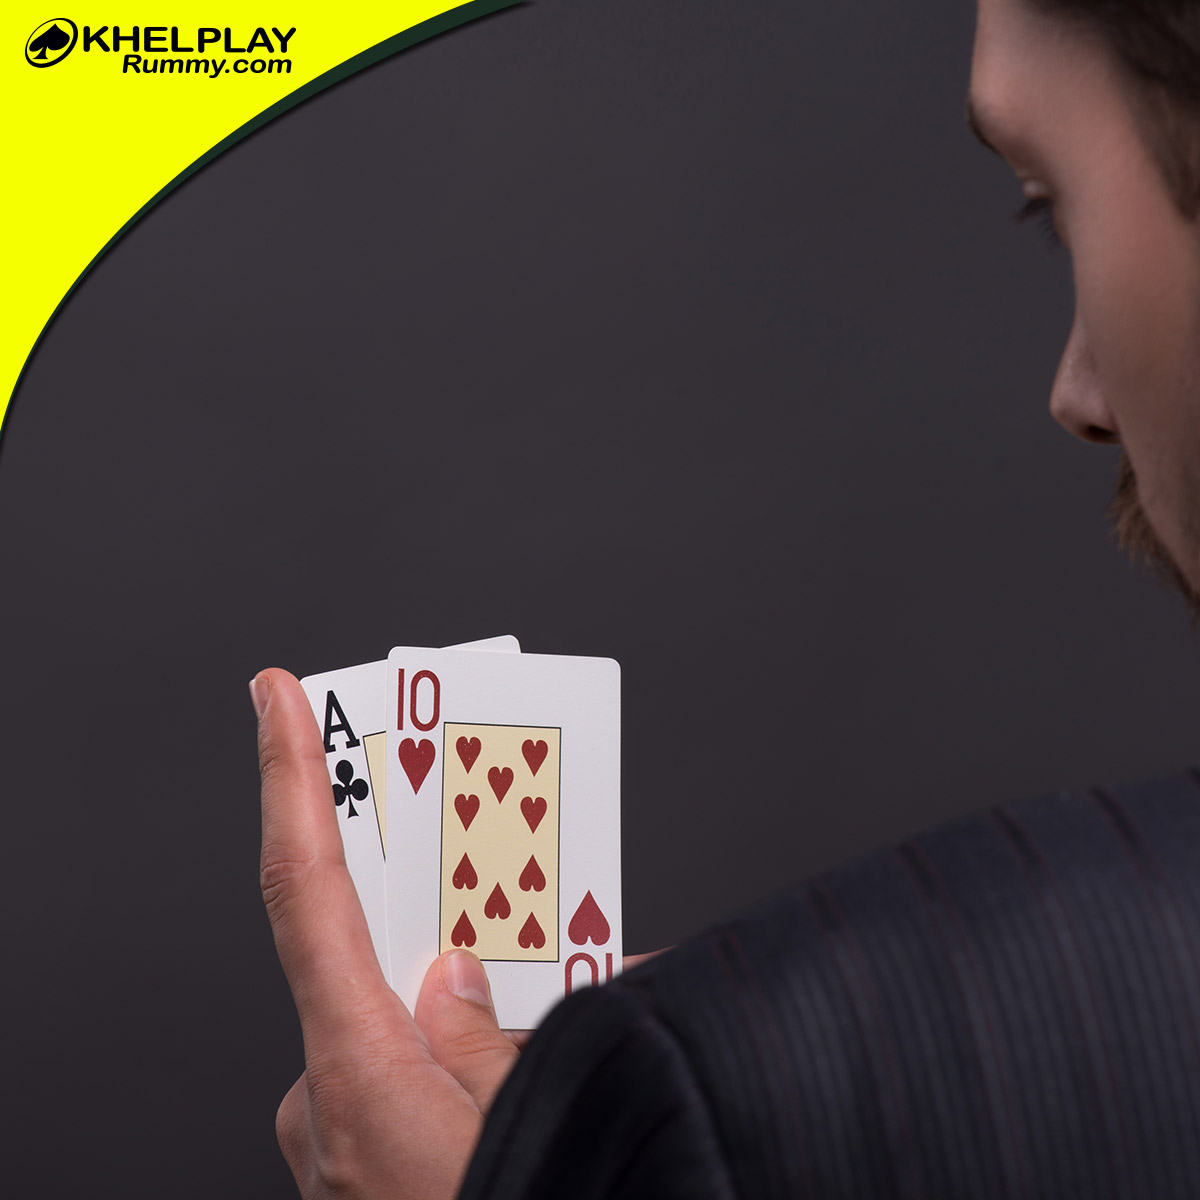 Reasons to Recommend Khelplay Rummy to Friends